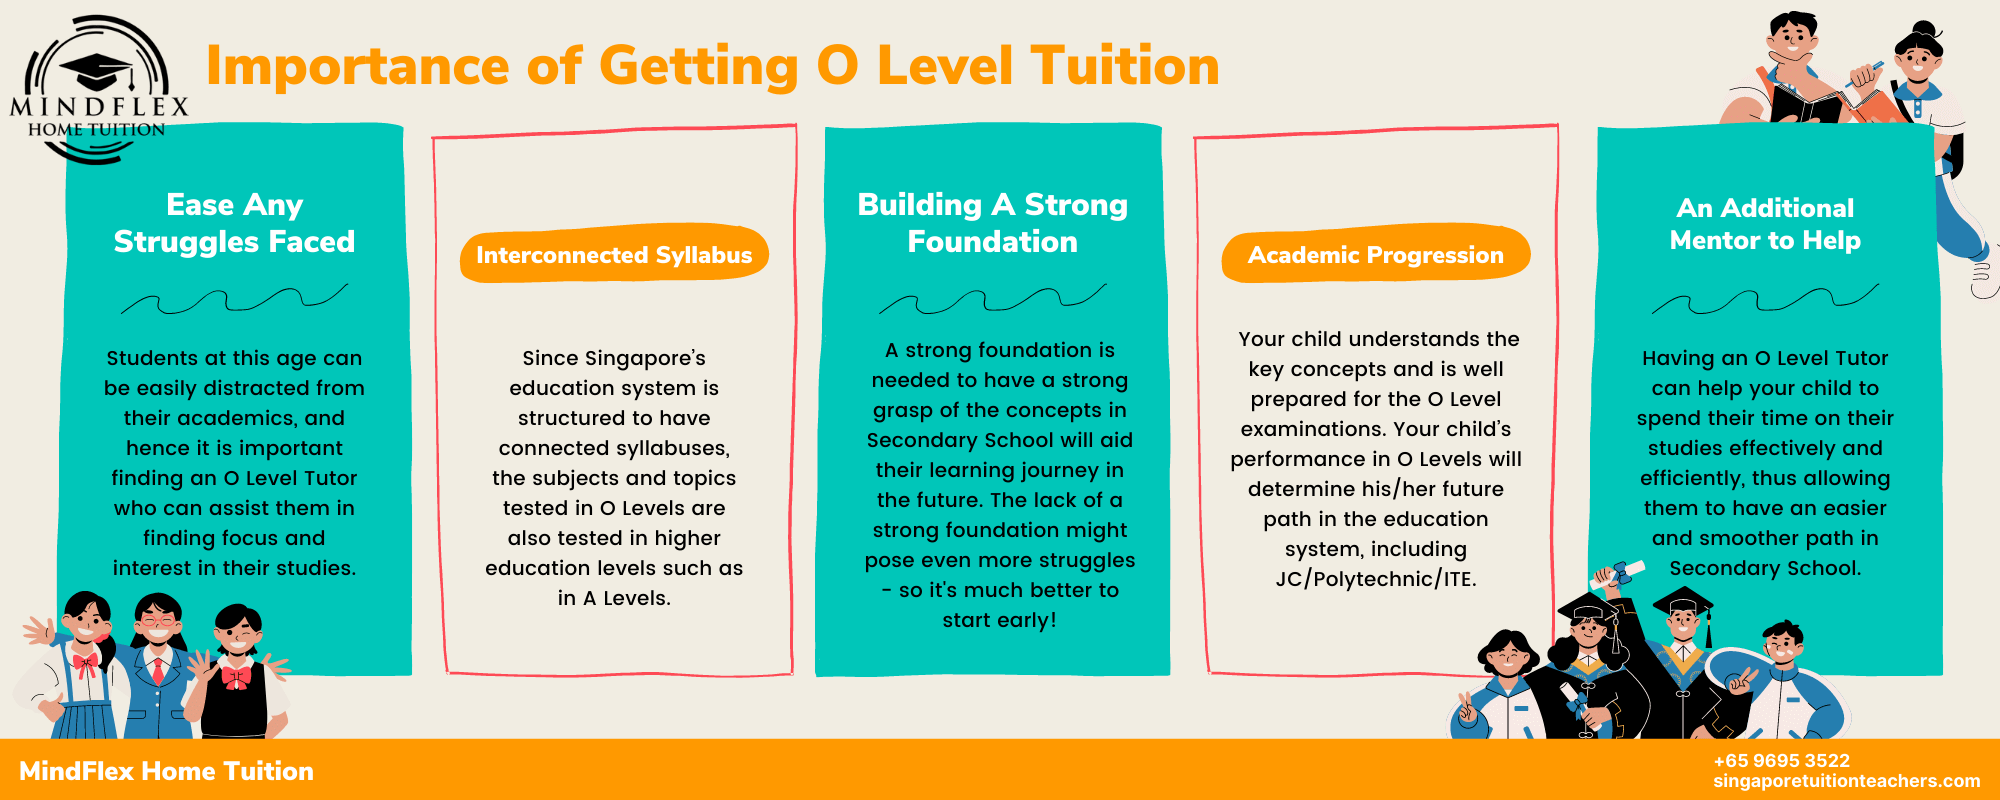 Infographic on Importance of O Level Tuition